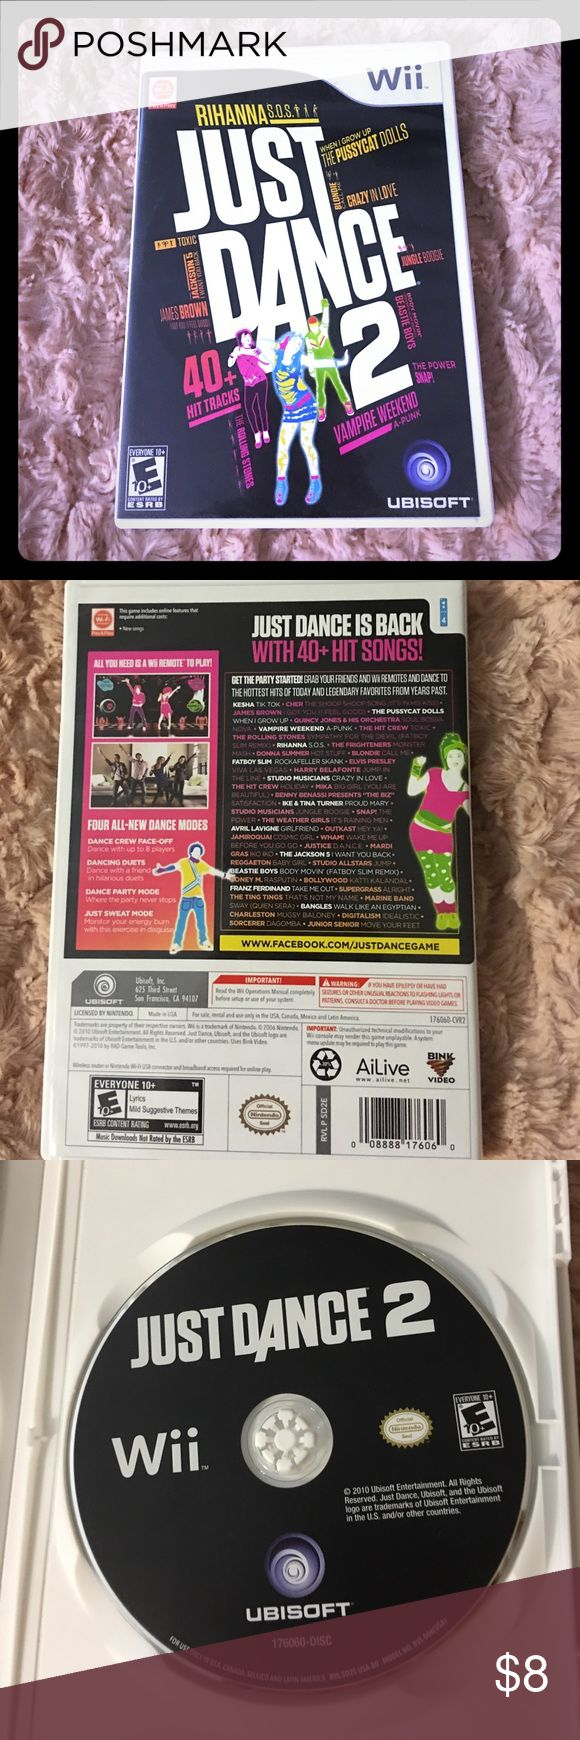 Wii game: Just Dance 2 Wii game Just Dance 2. Rarely used. Wii Other